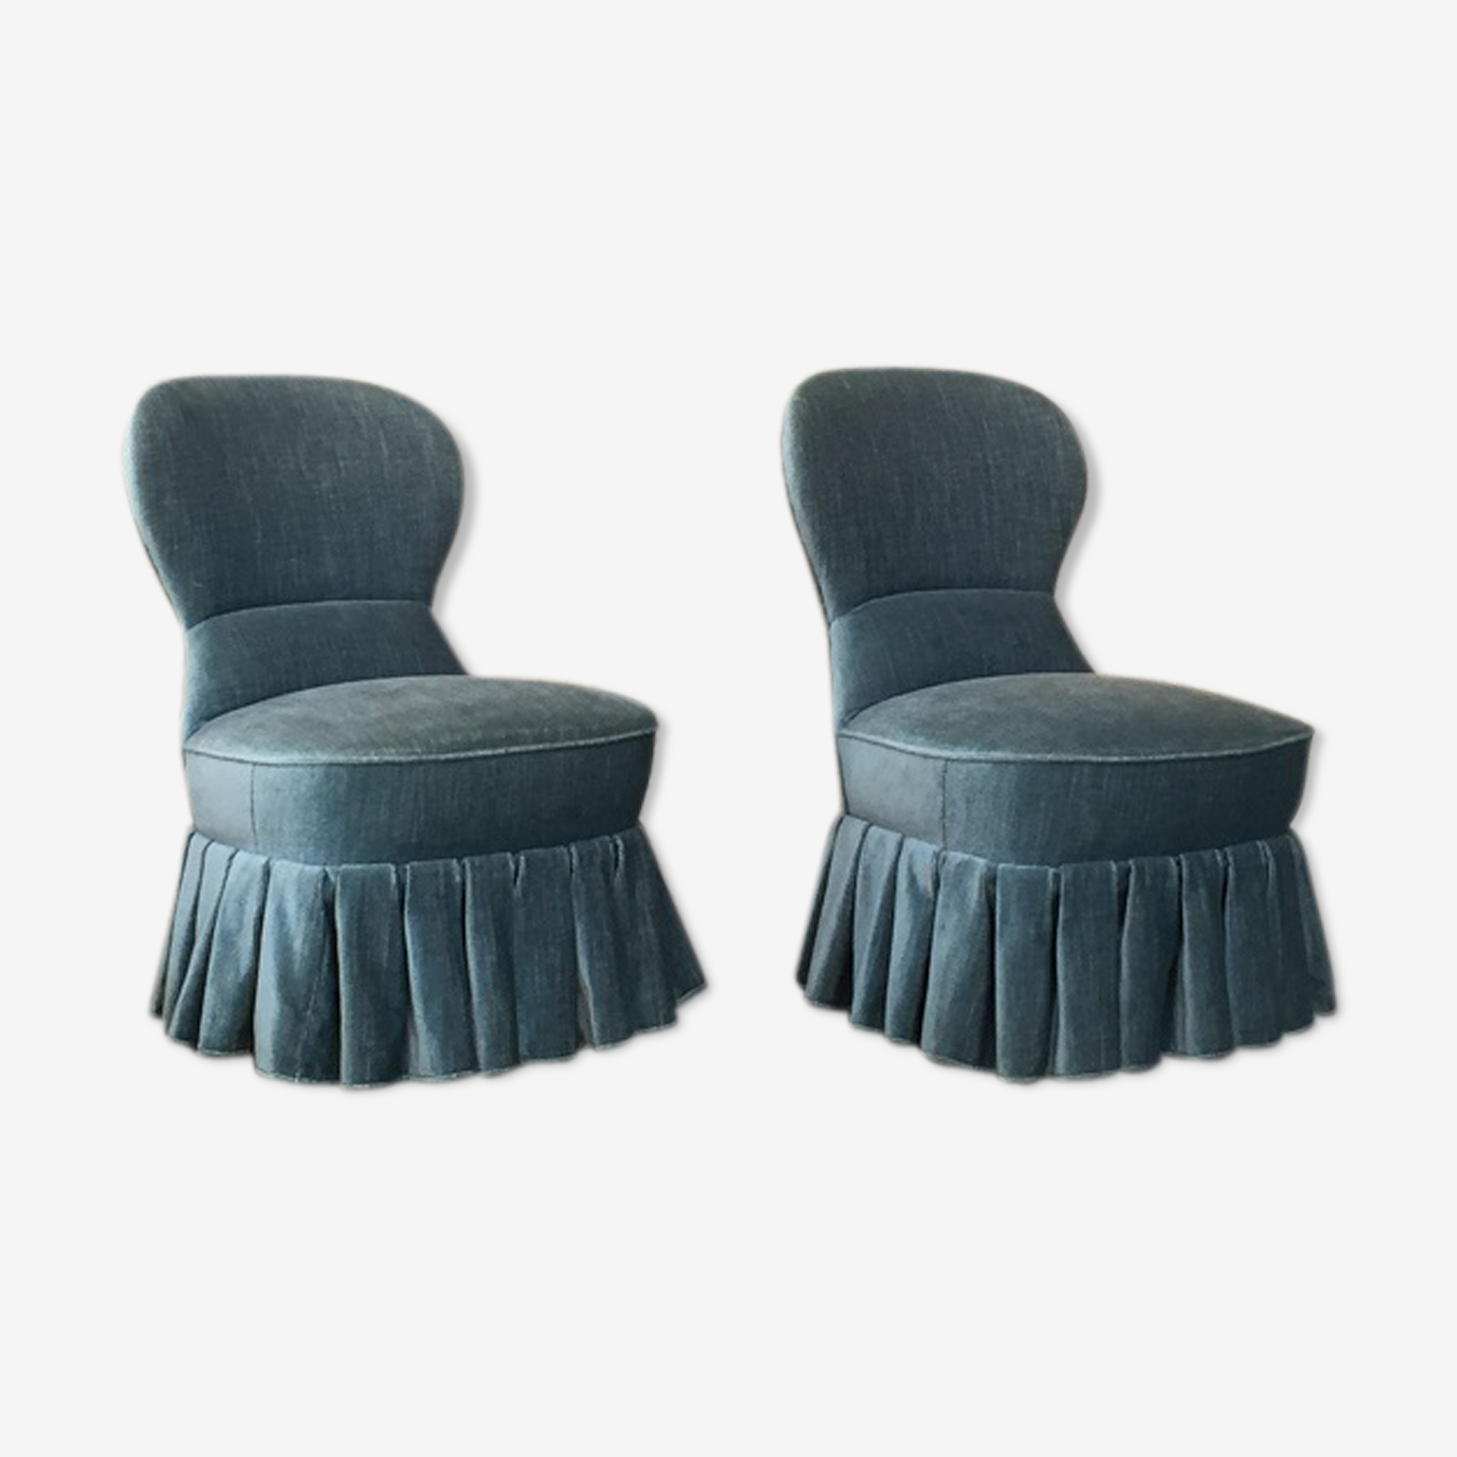 Pair of toad armchairs with blue-green velvet skirt